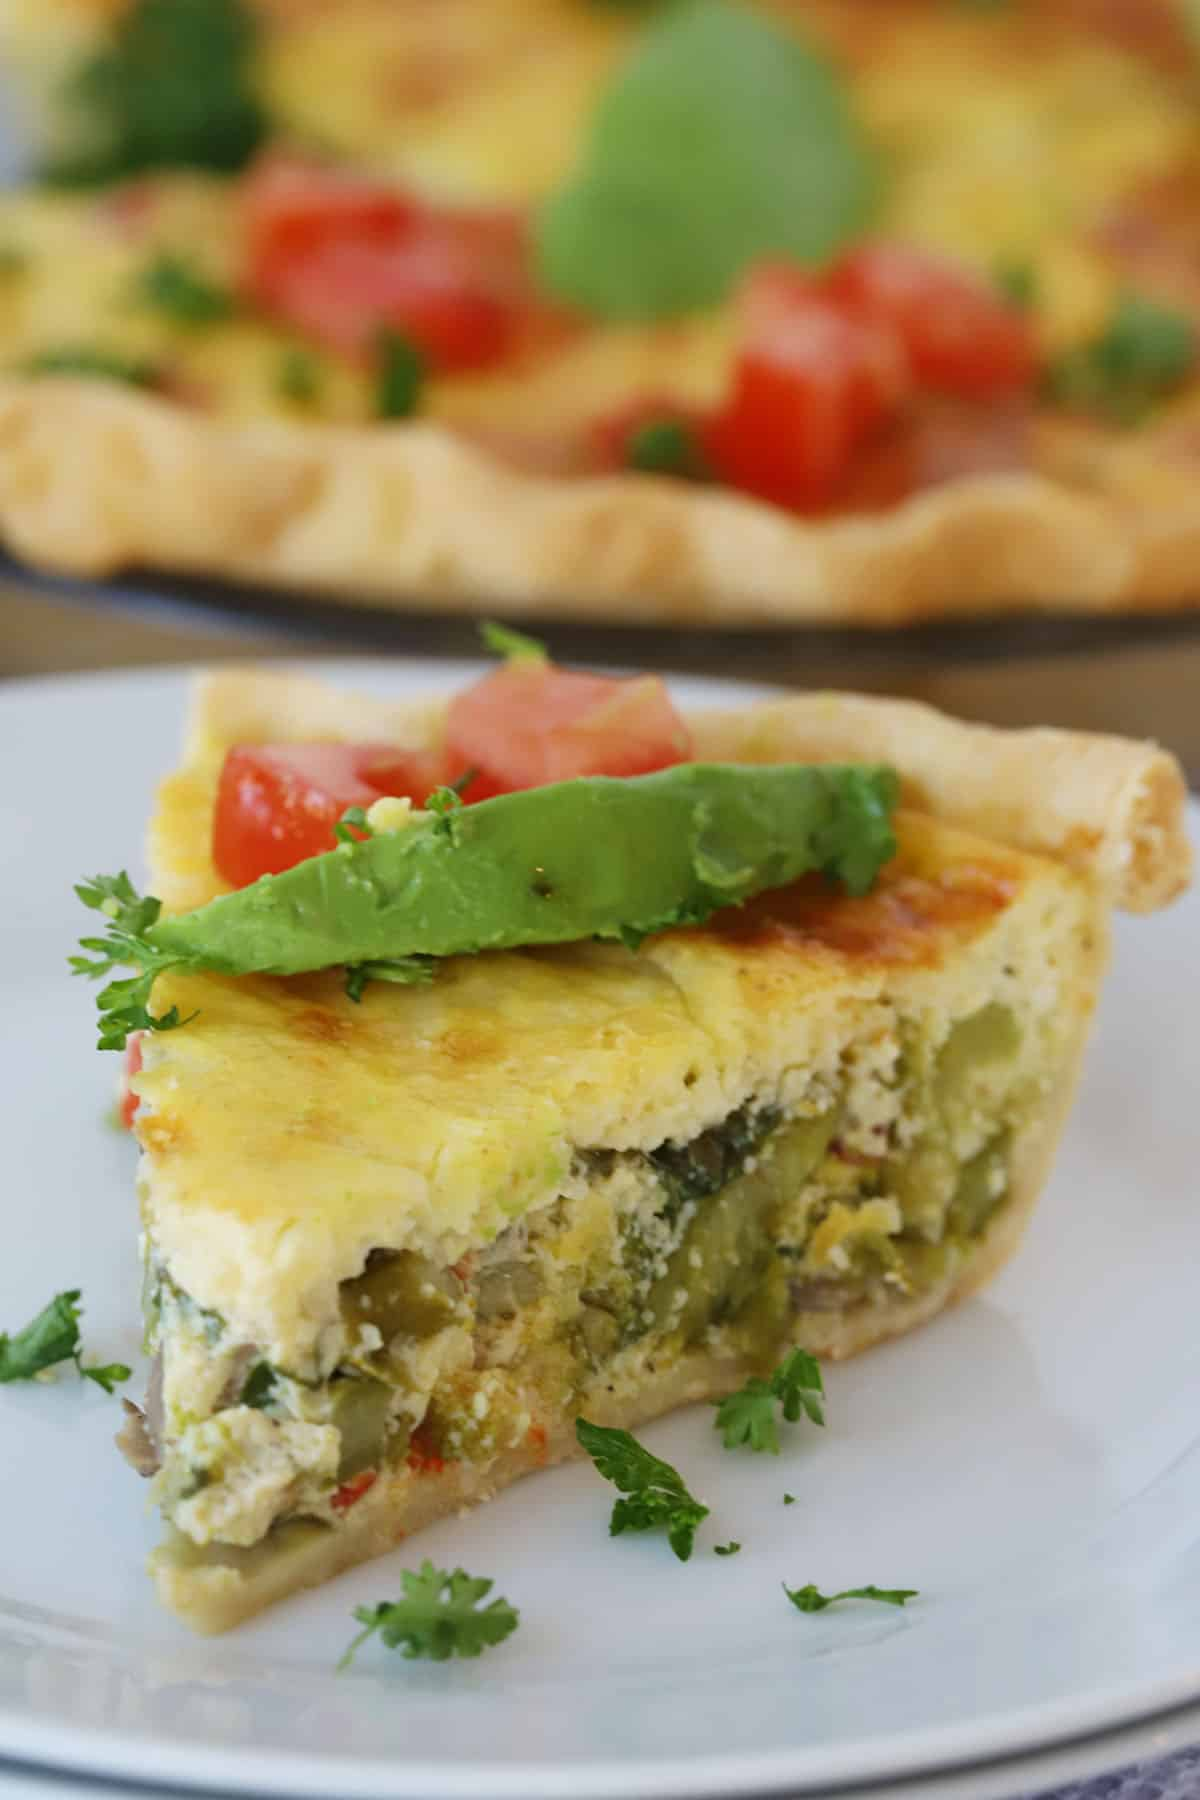 A slice of baked quiche on a white plate, topped with avocados and tomatoes.